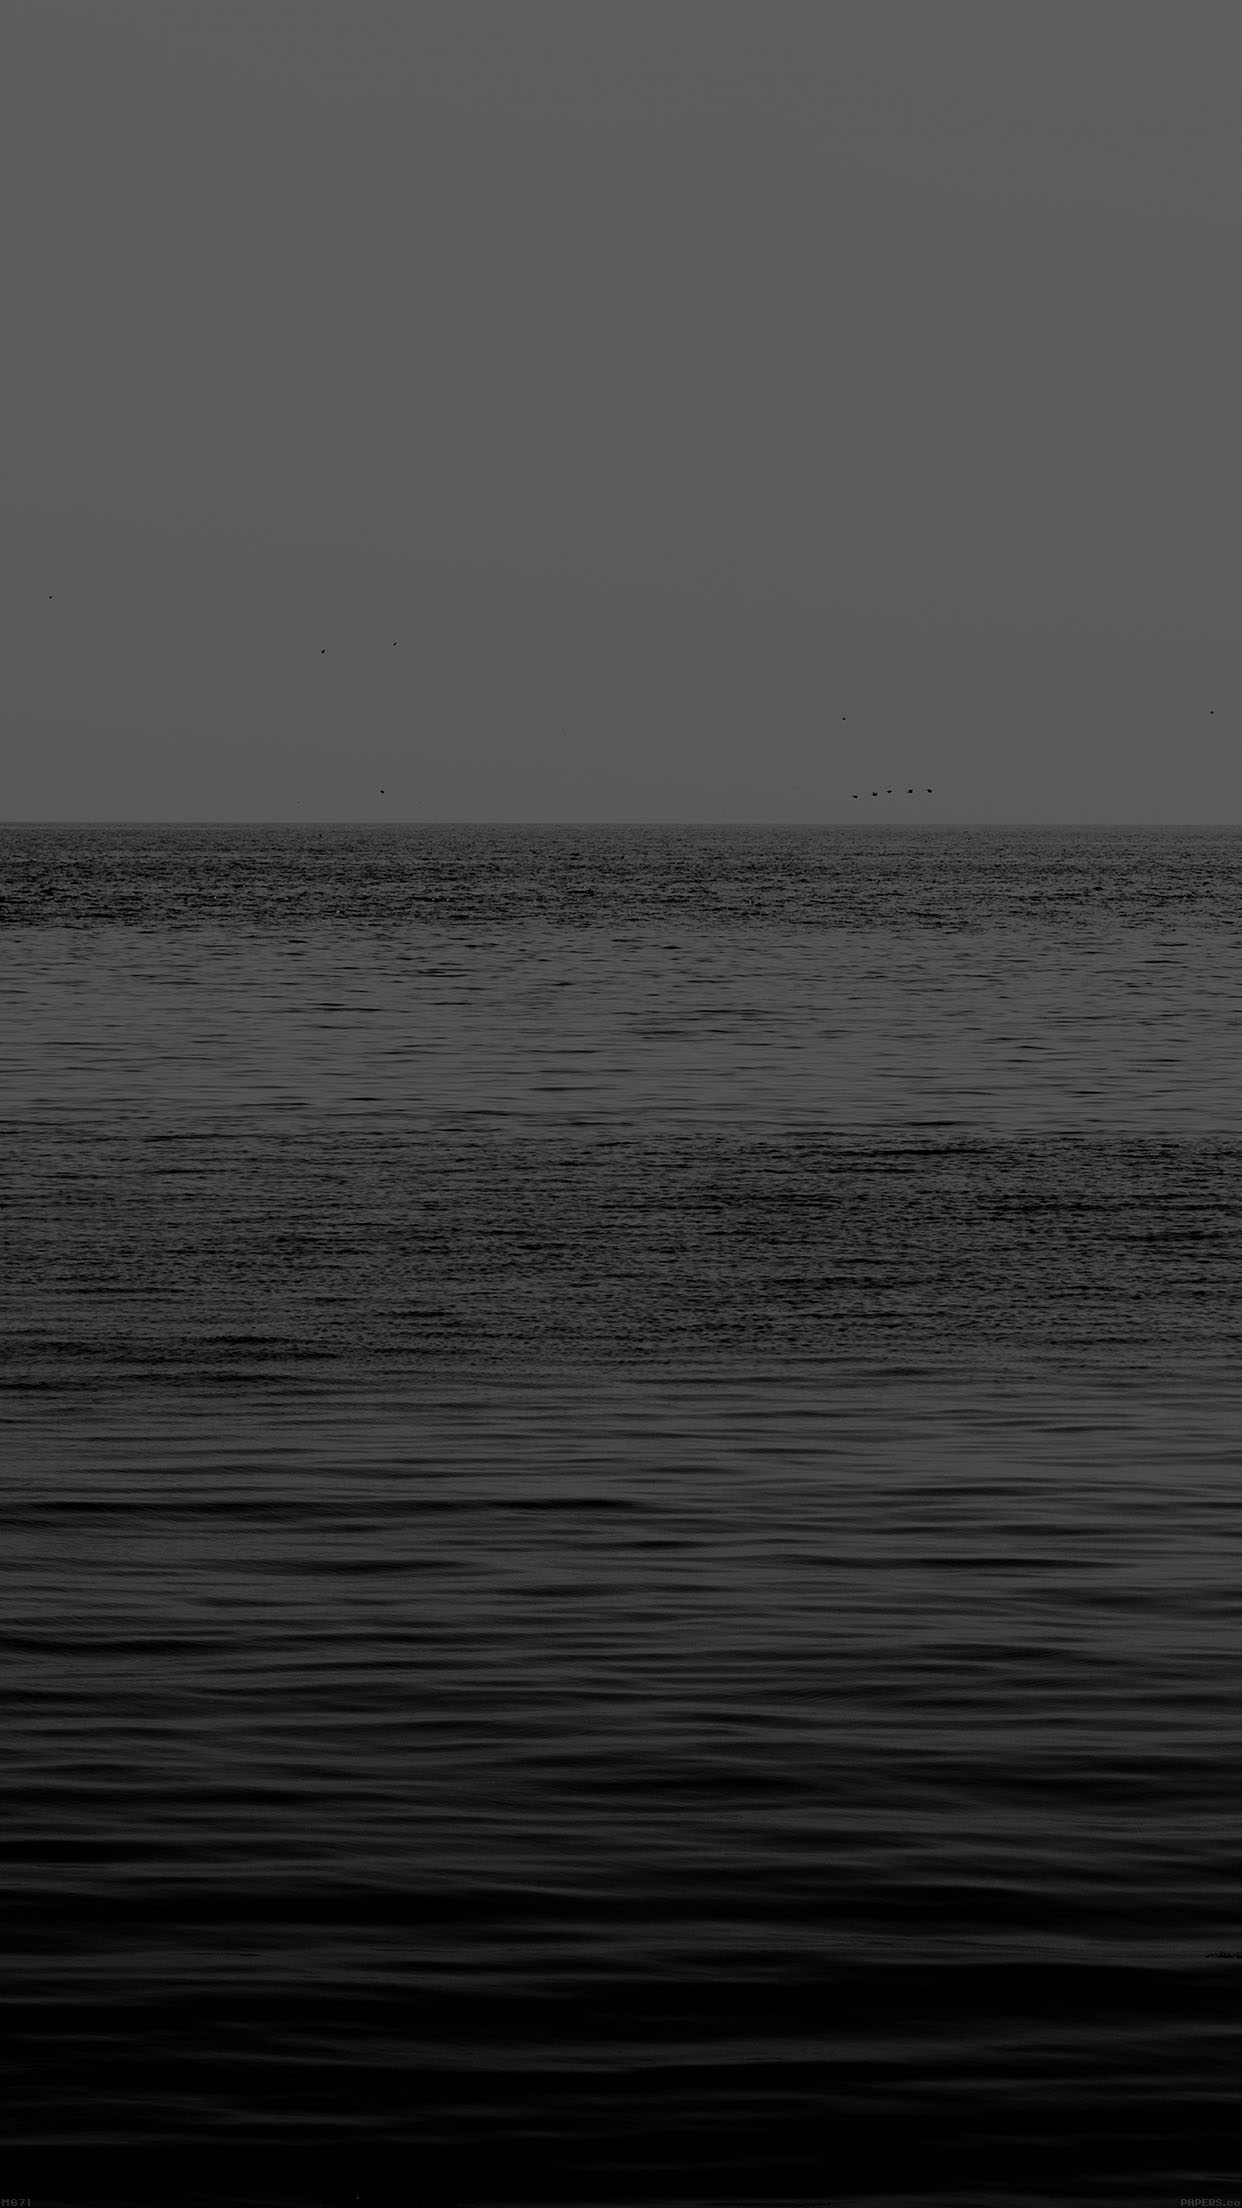 Black Sea Ocean Flat Nature Android Wallpaper Dark Ocean Wallpaper Iphone 1242x2208 Wallpaper Teahub Io